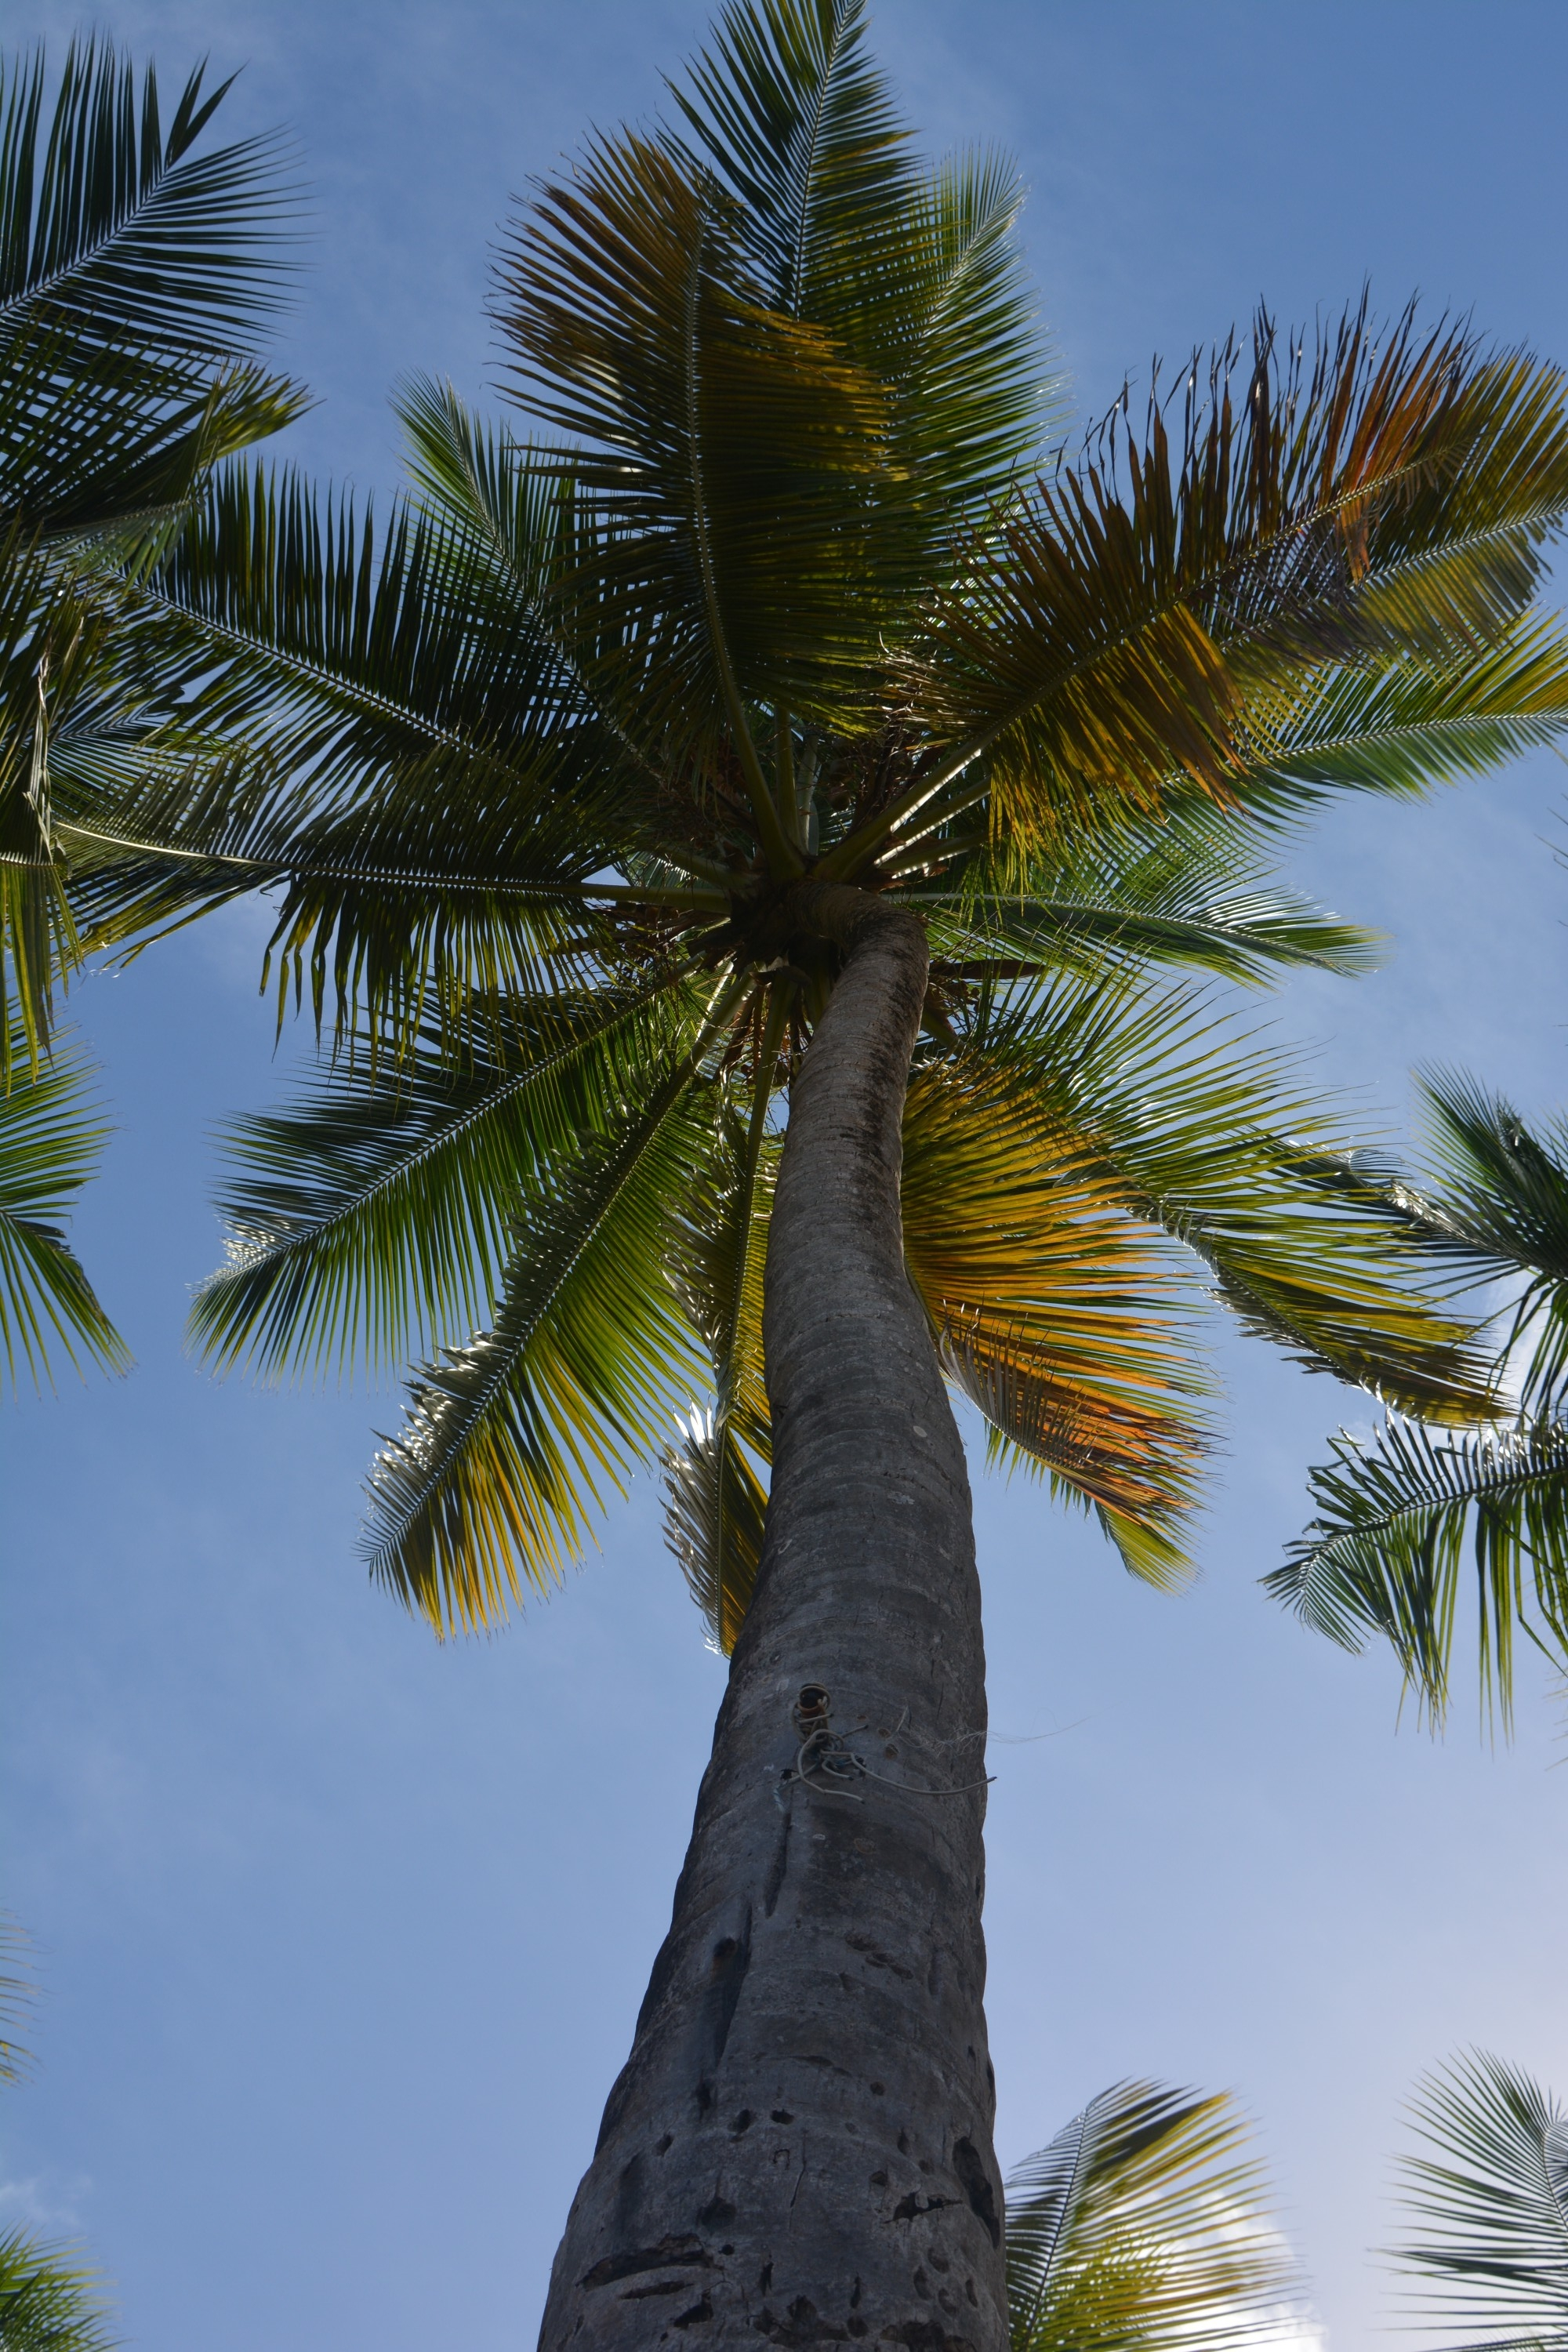 Looking Up At A Coconut Palm Tree